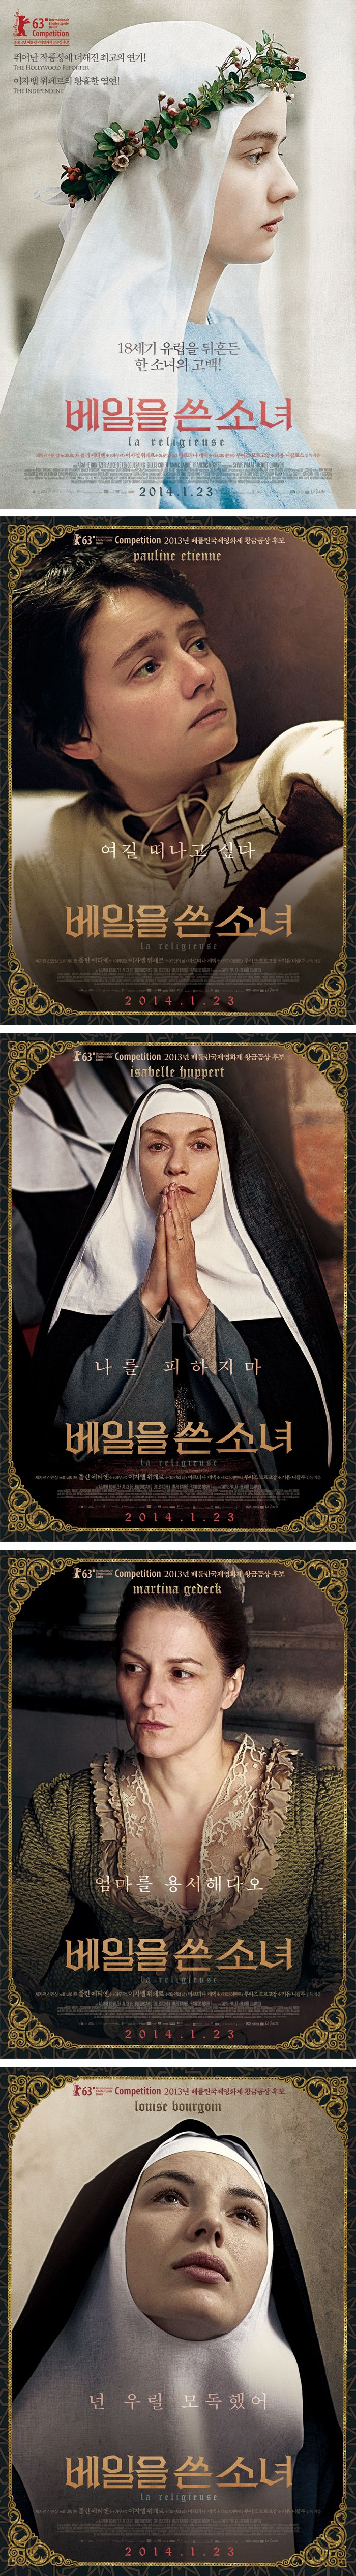 Film :: alternative graphics - PROPAGANDA :: - 베일을 쓴 소녀 La Religieuse